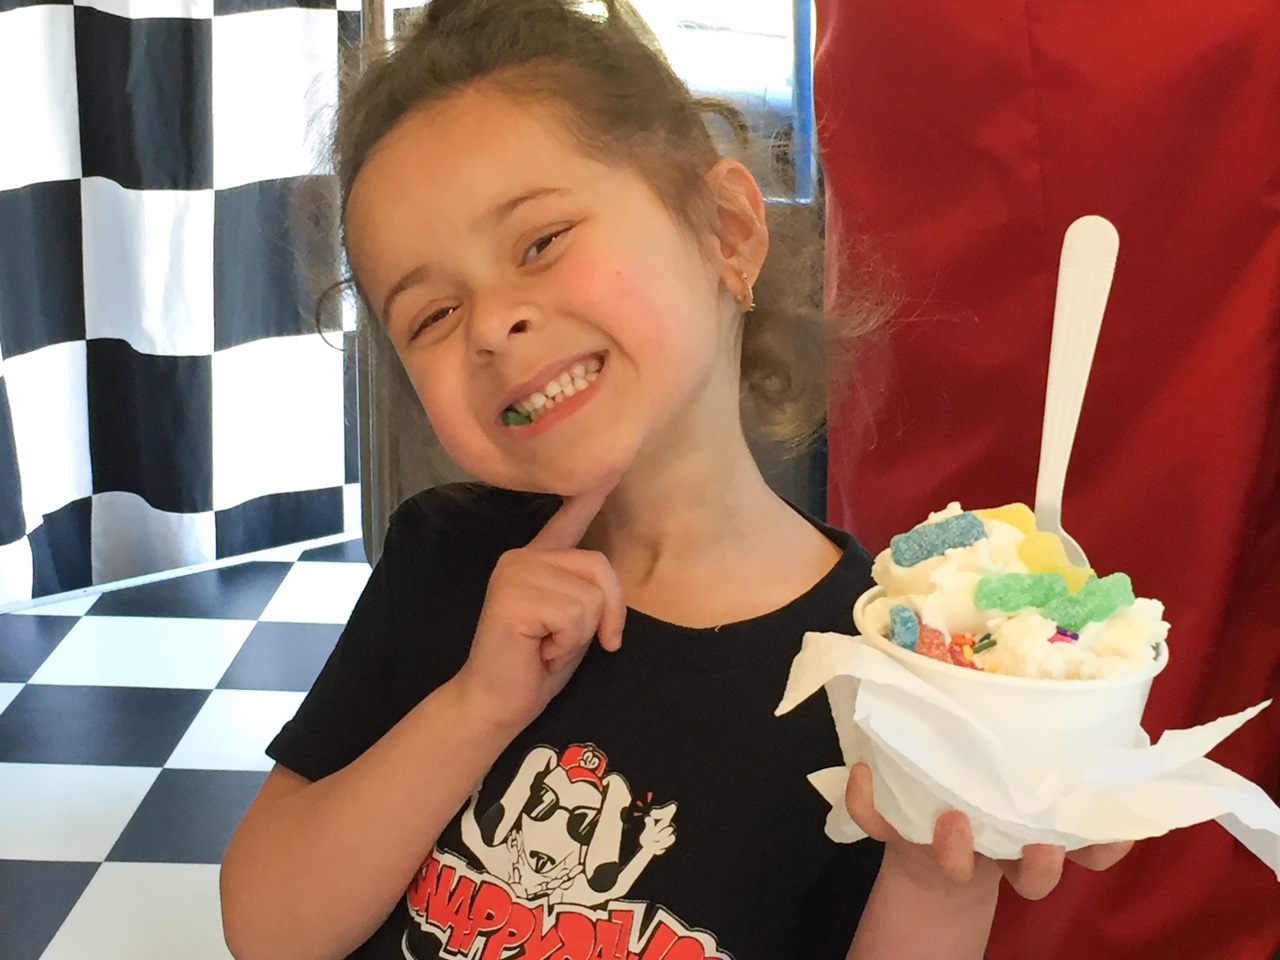 Young Girl with Her Ice Cream and Gummie Bears